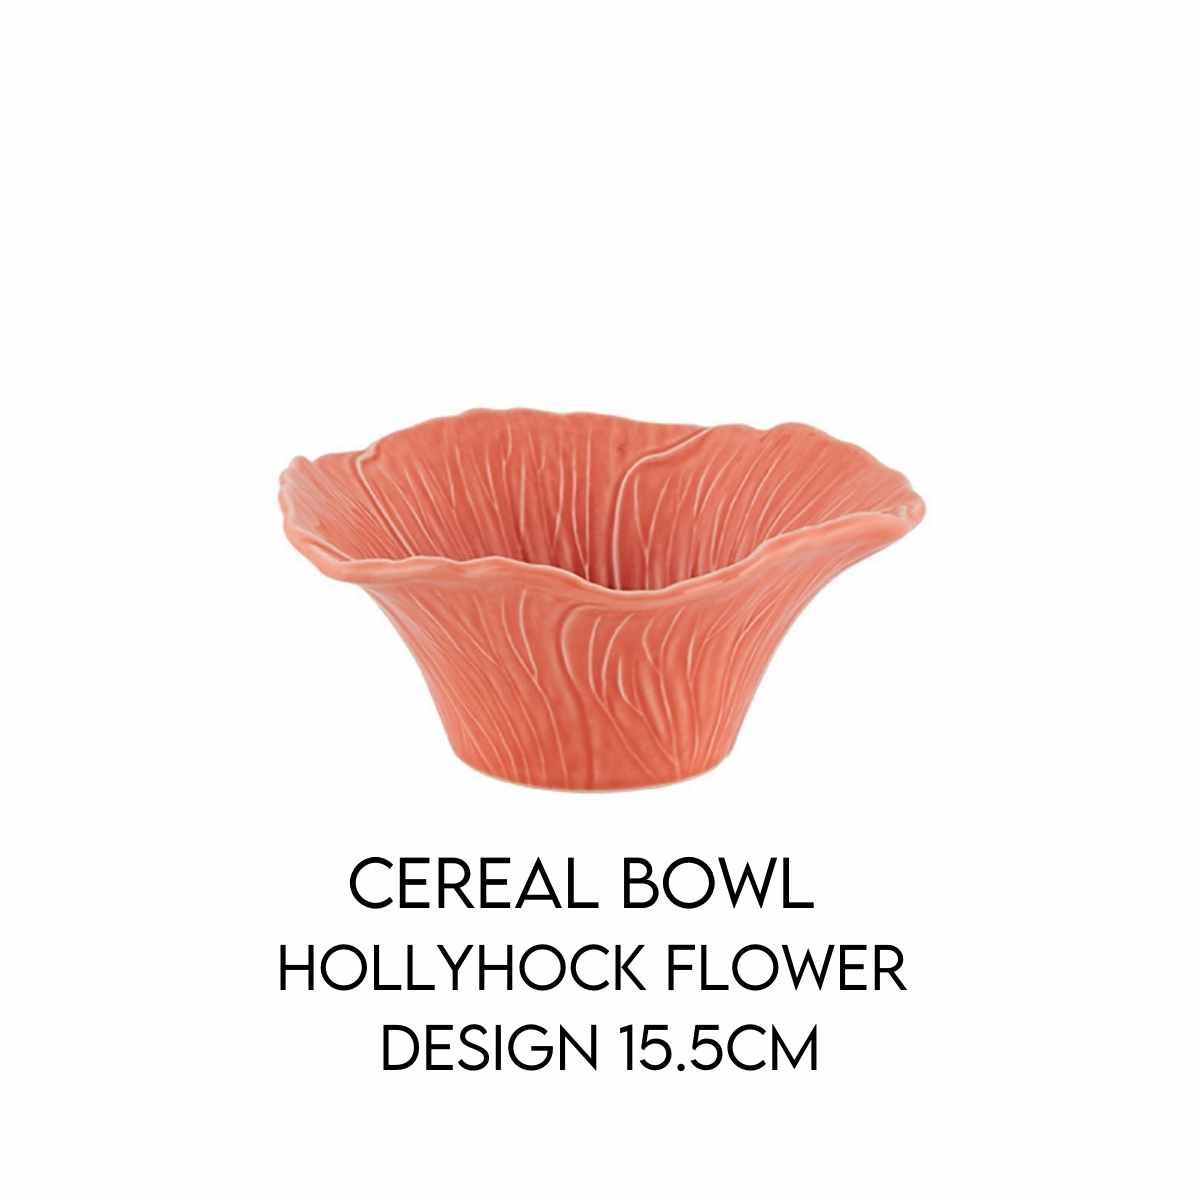 Hostaro Tableware Maria Flor cereal bowl hollyhock